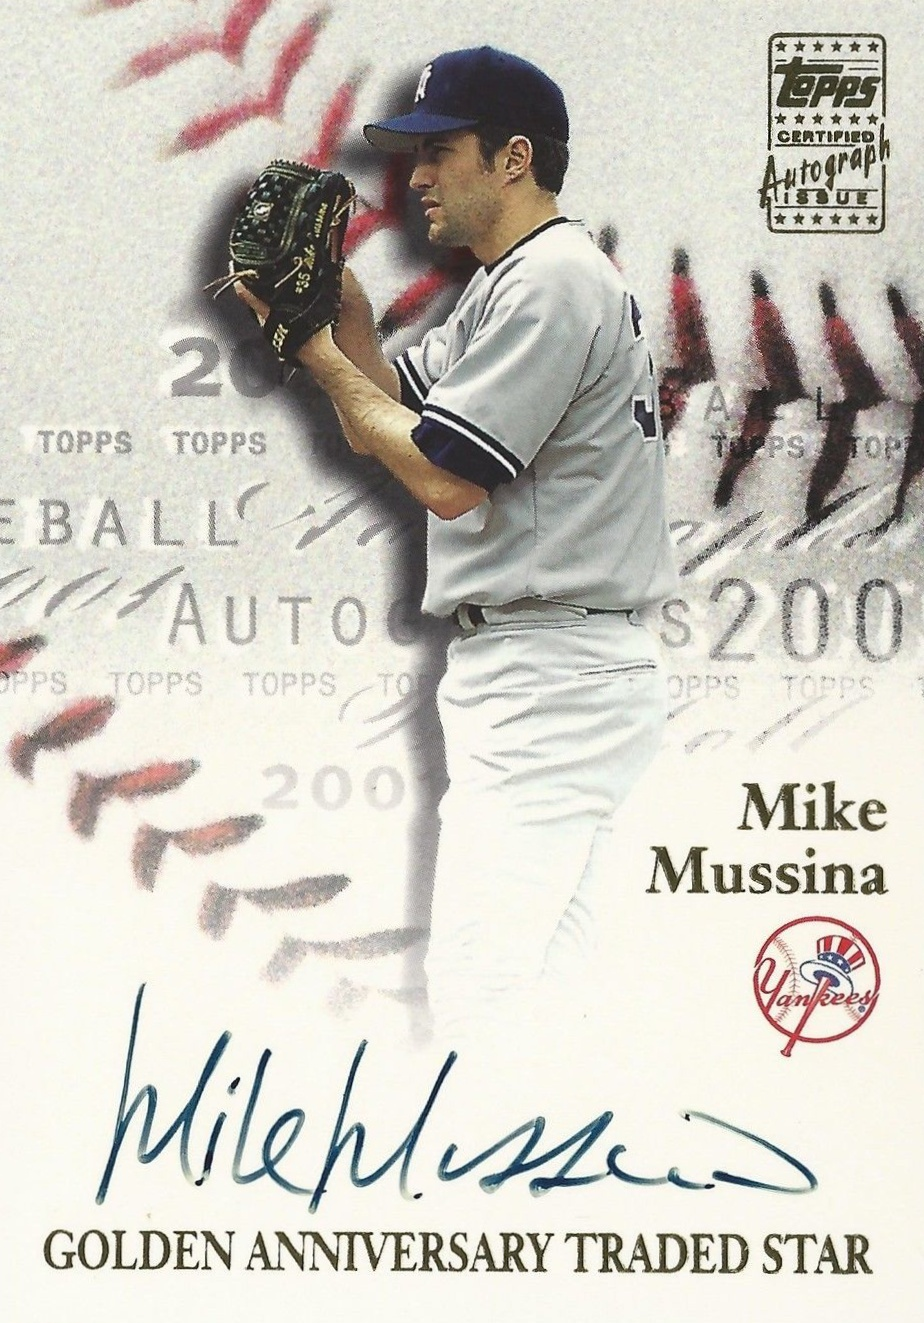 Hall of Fame Mike! Top 10 Mike Mussina Baseball Cards 3